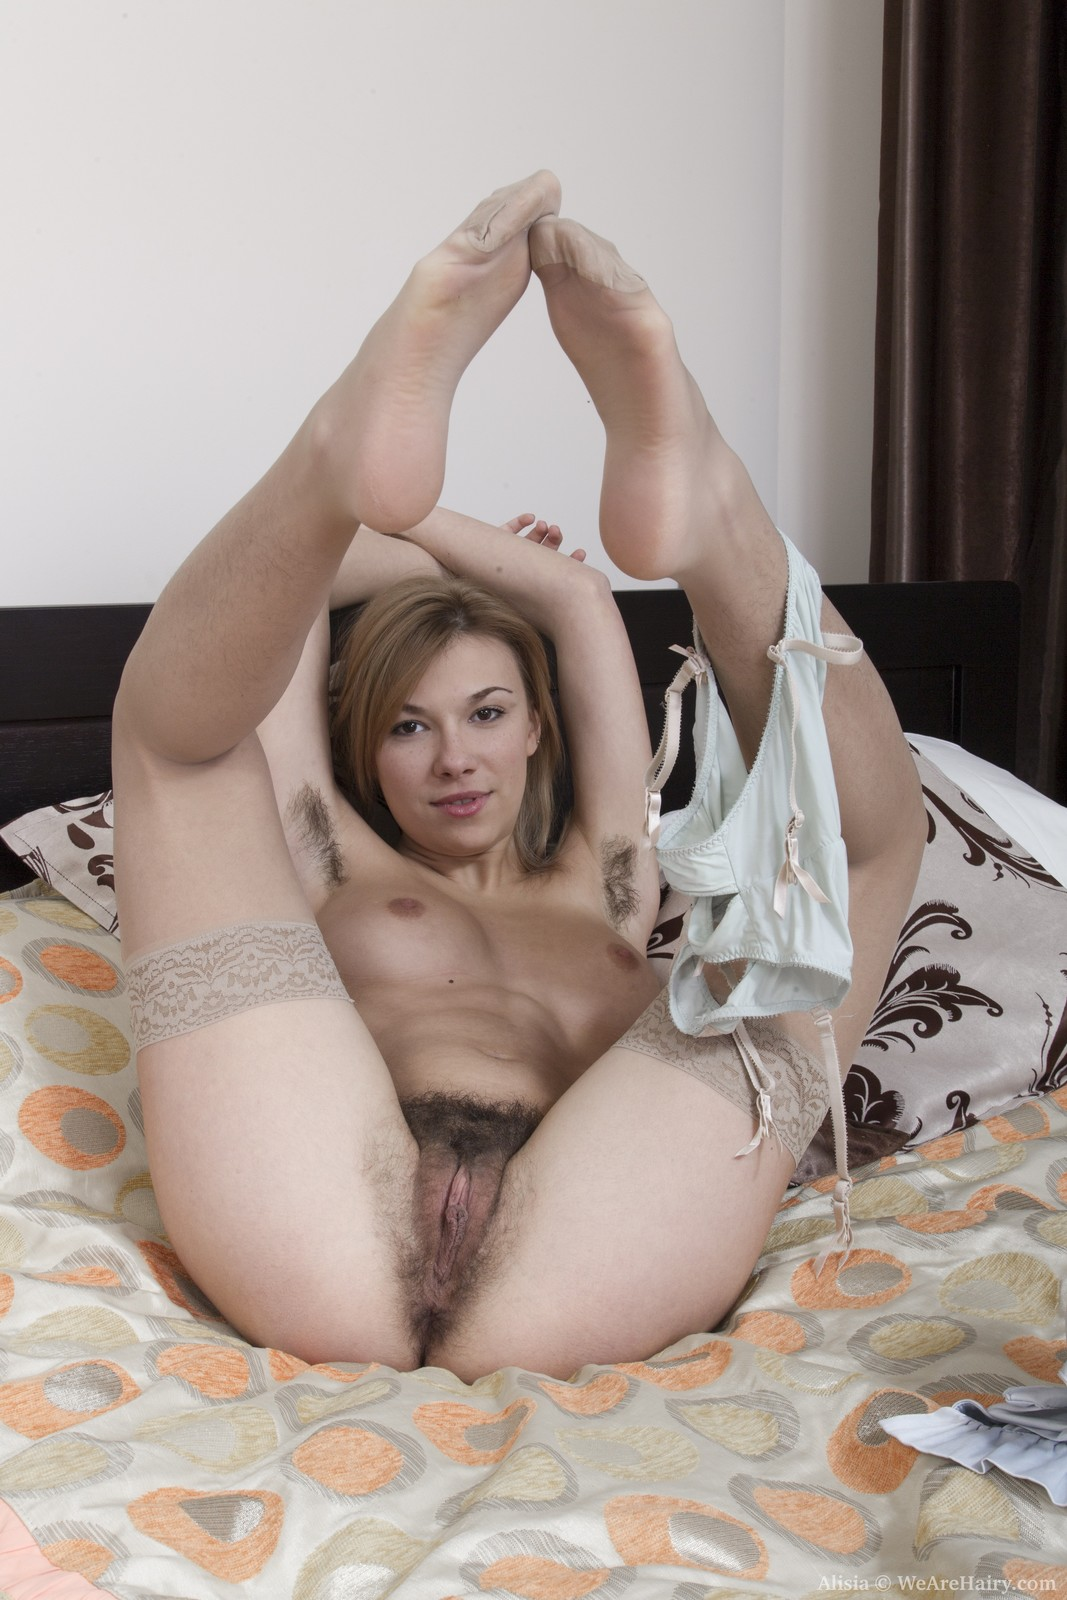 Alisia from we are hairy